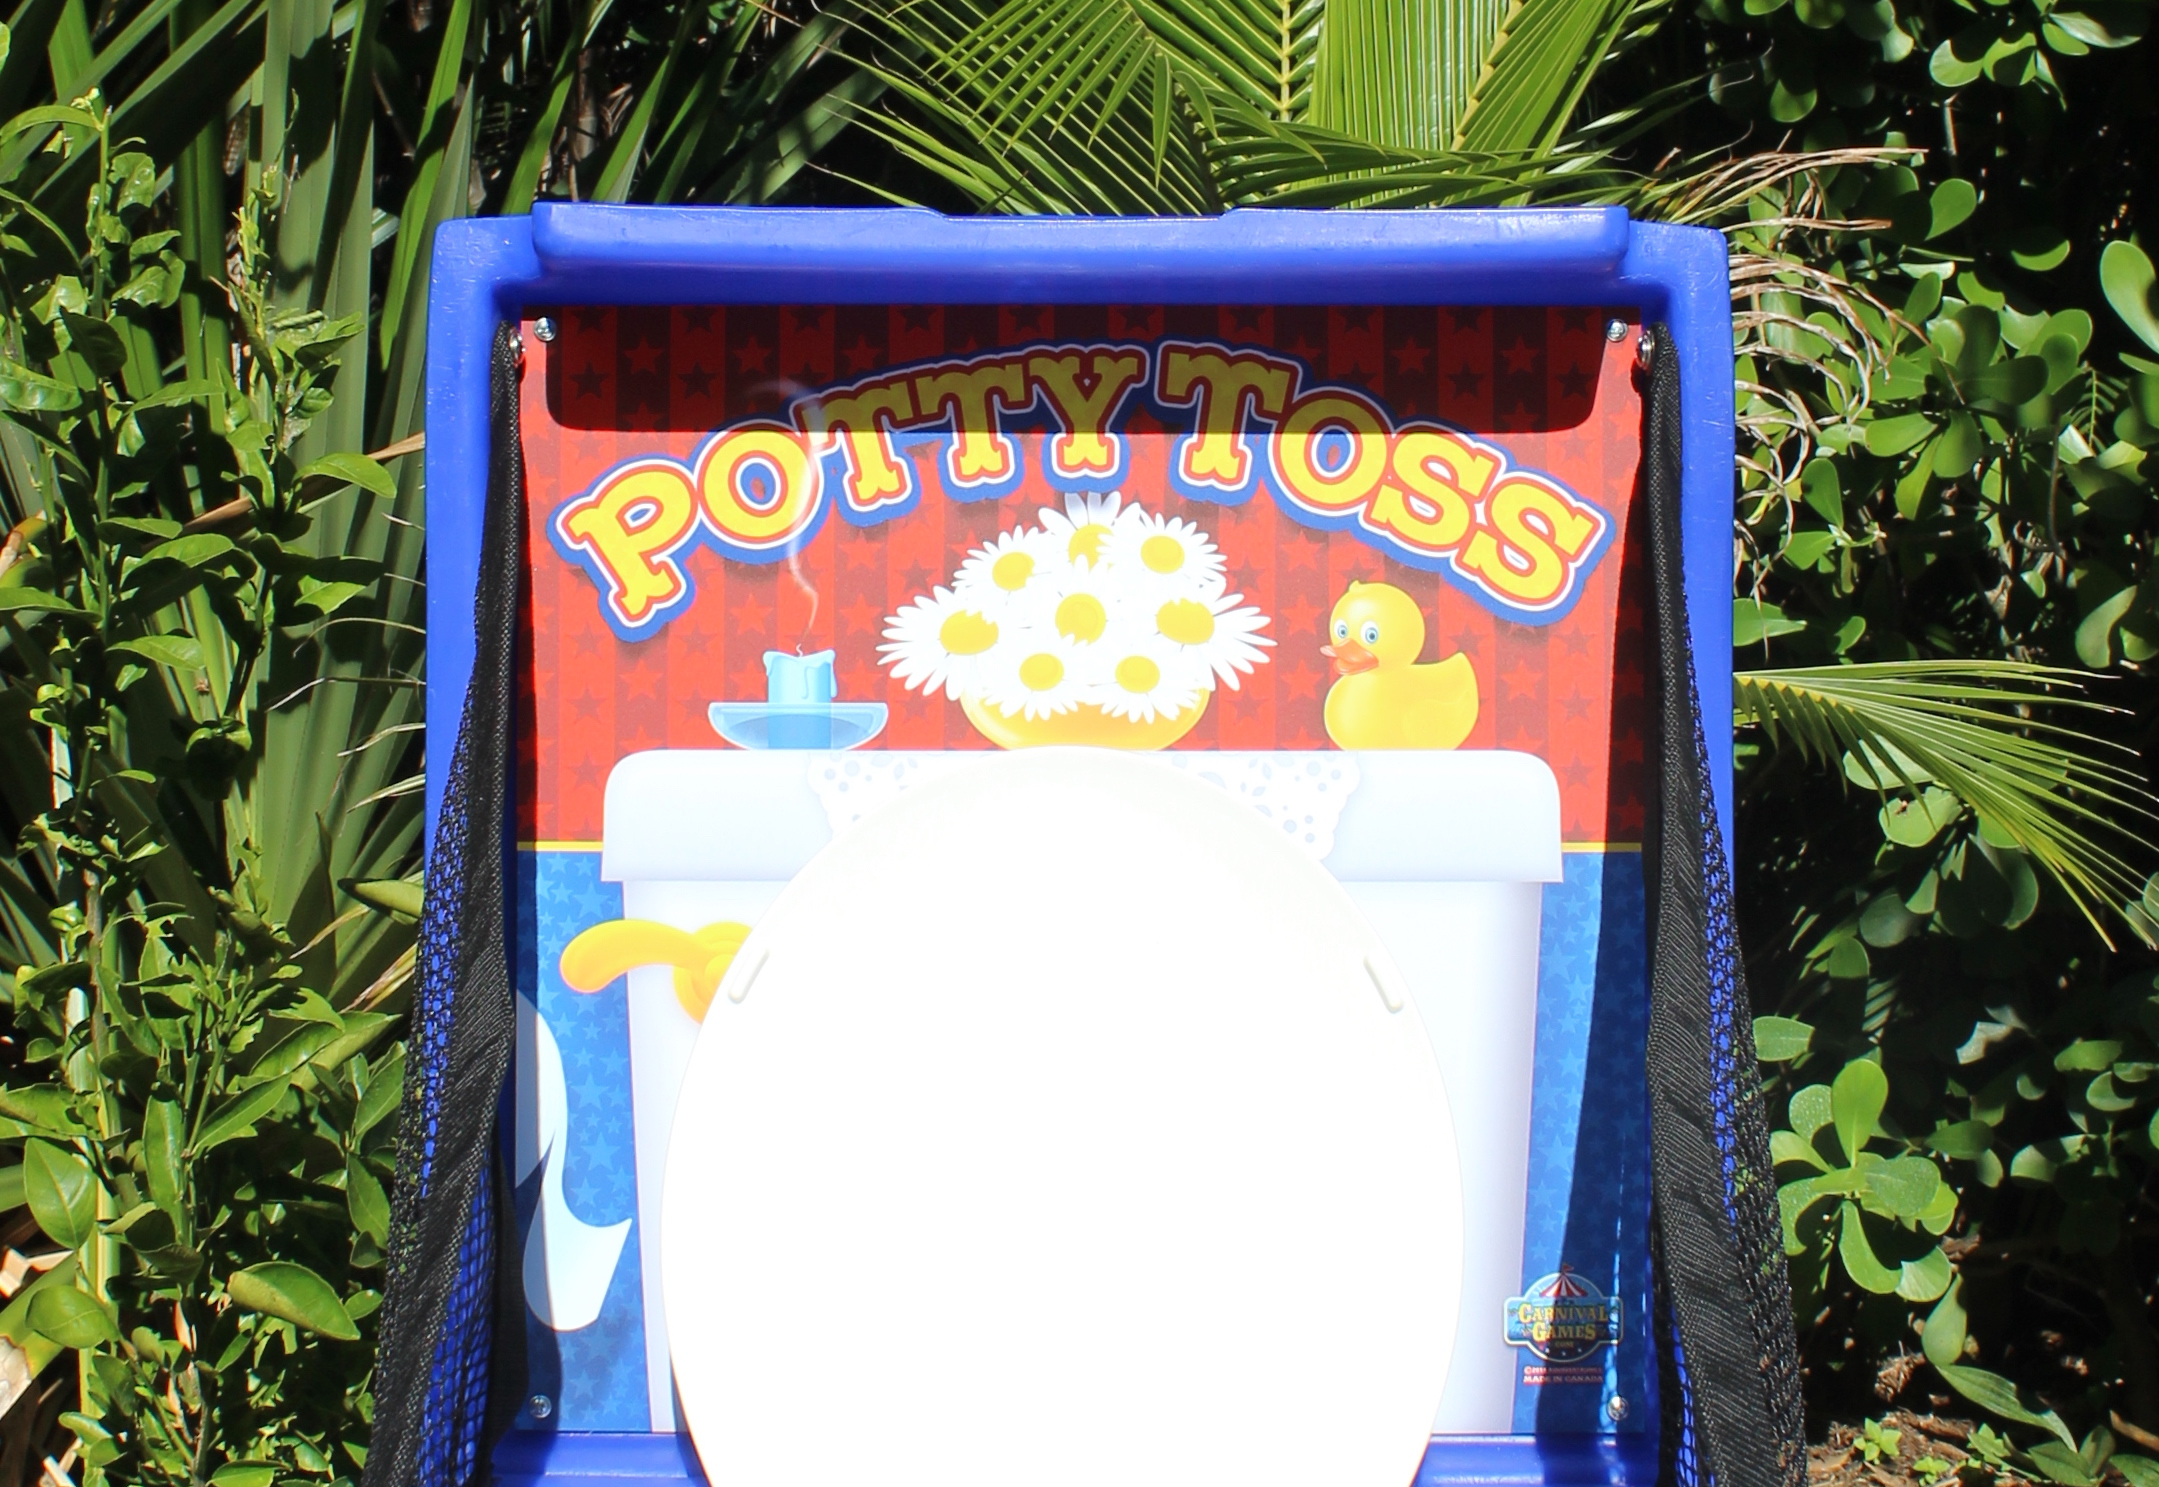 pottytoss-jupiterfarmsbirthdayparty-indiantown-boyntonbeach-bocaraton-stuart-southfloridaeventplanning.jpg